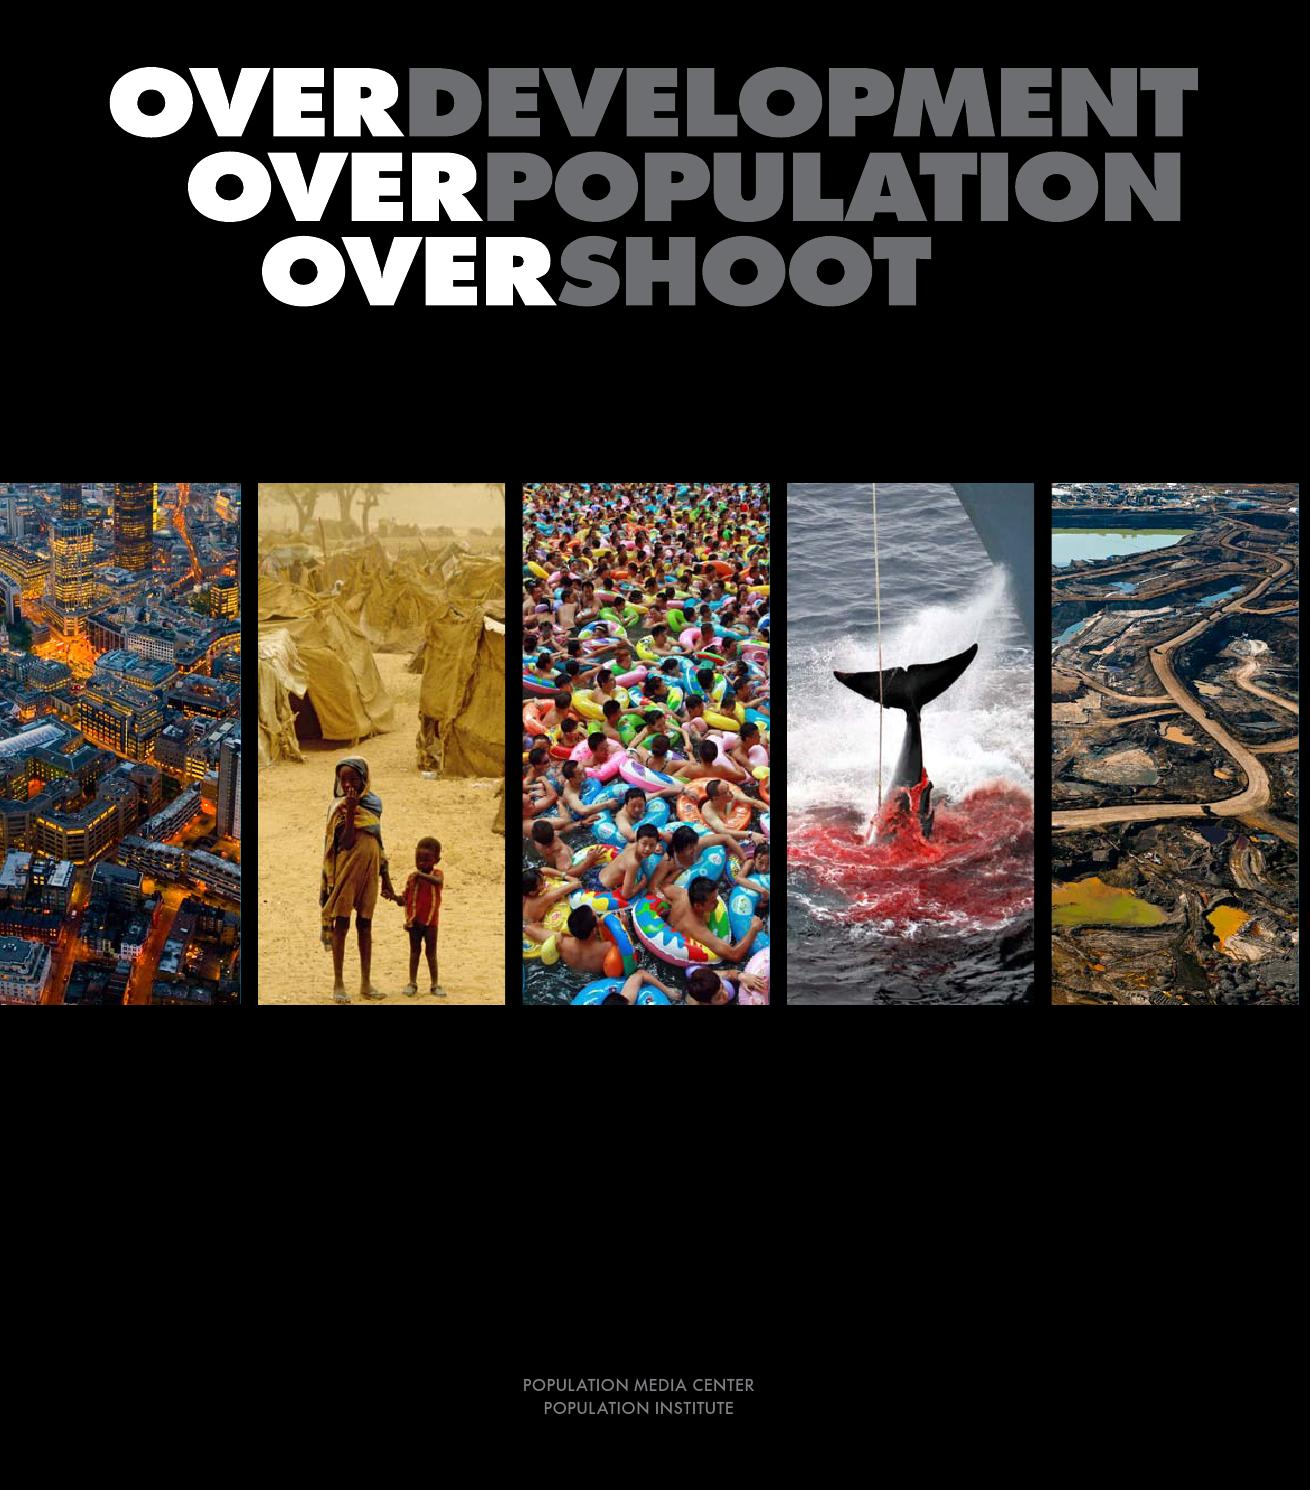 overpopulation the facts and solutions